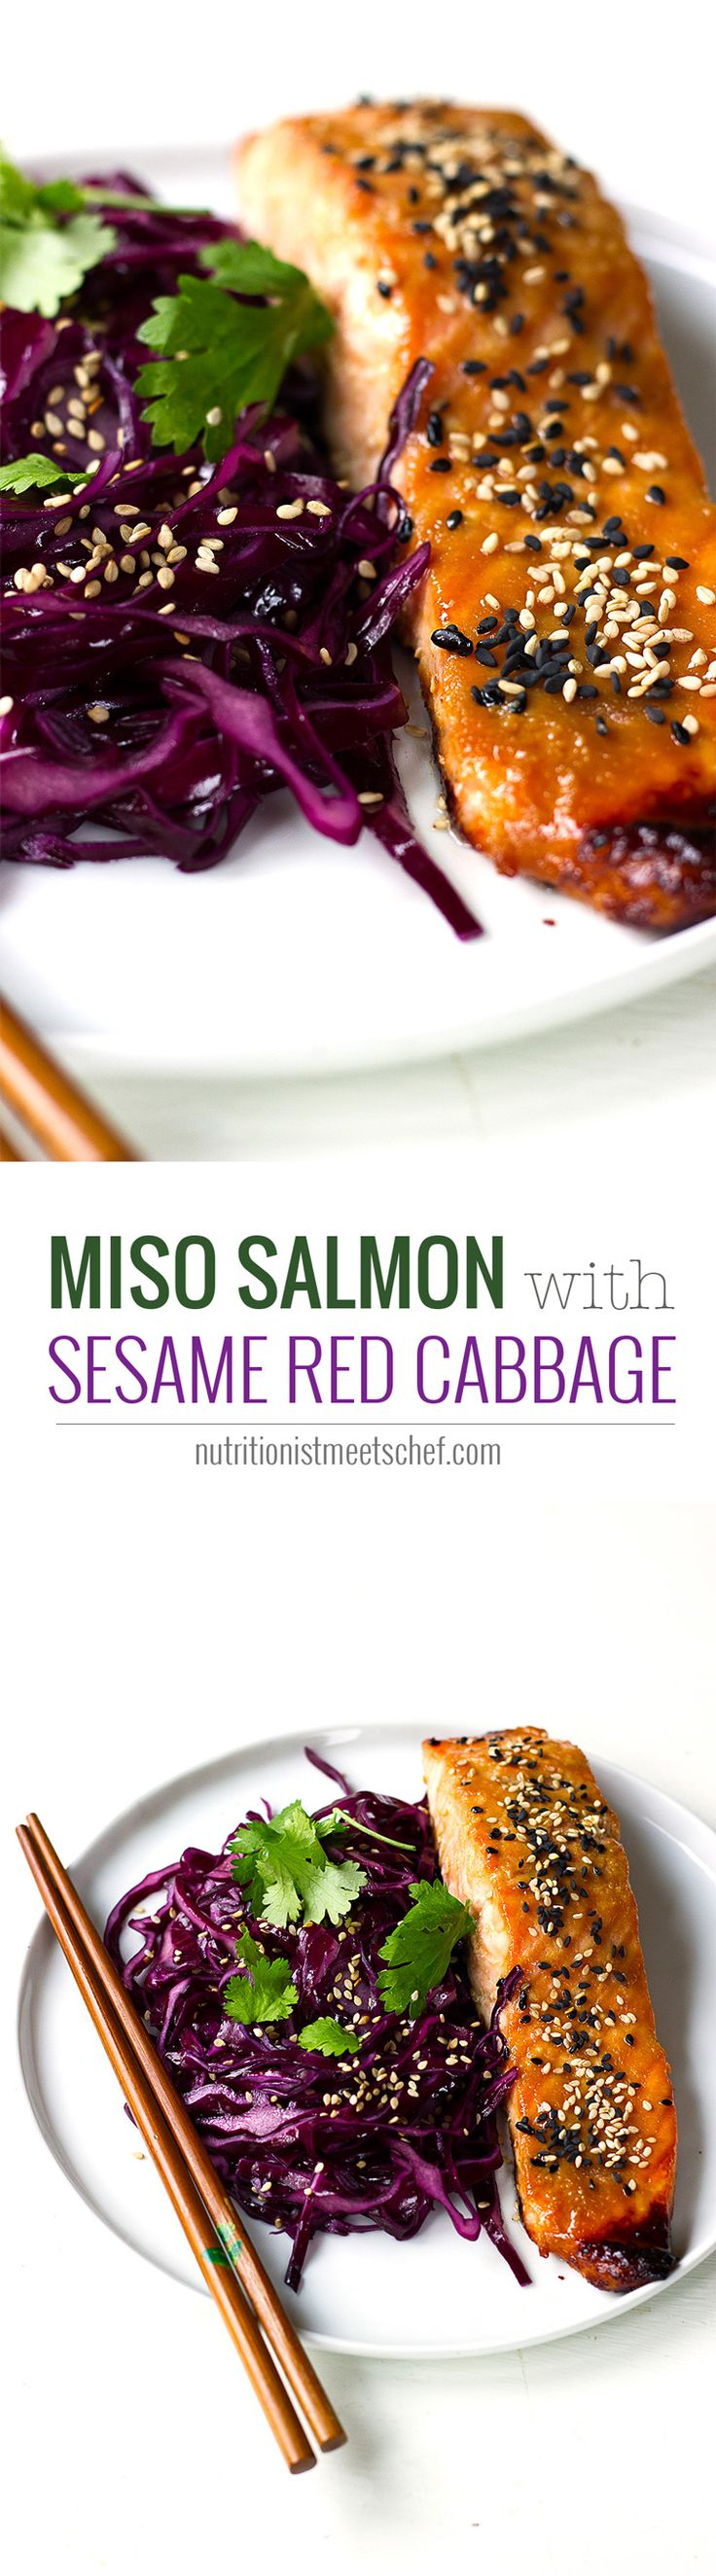 Miso Salmo with Sesame Red Cabbage! A tasty and healthy dinner! See more at nutritionistmeetschef.com via @nutrimeetschef